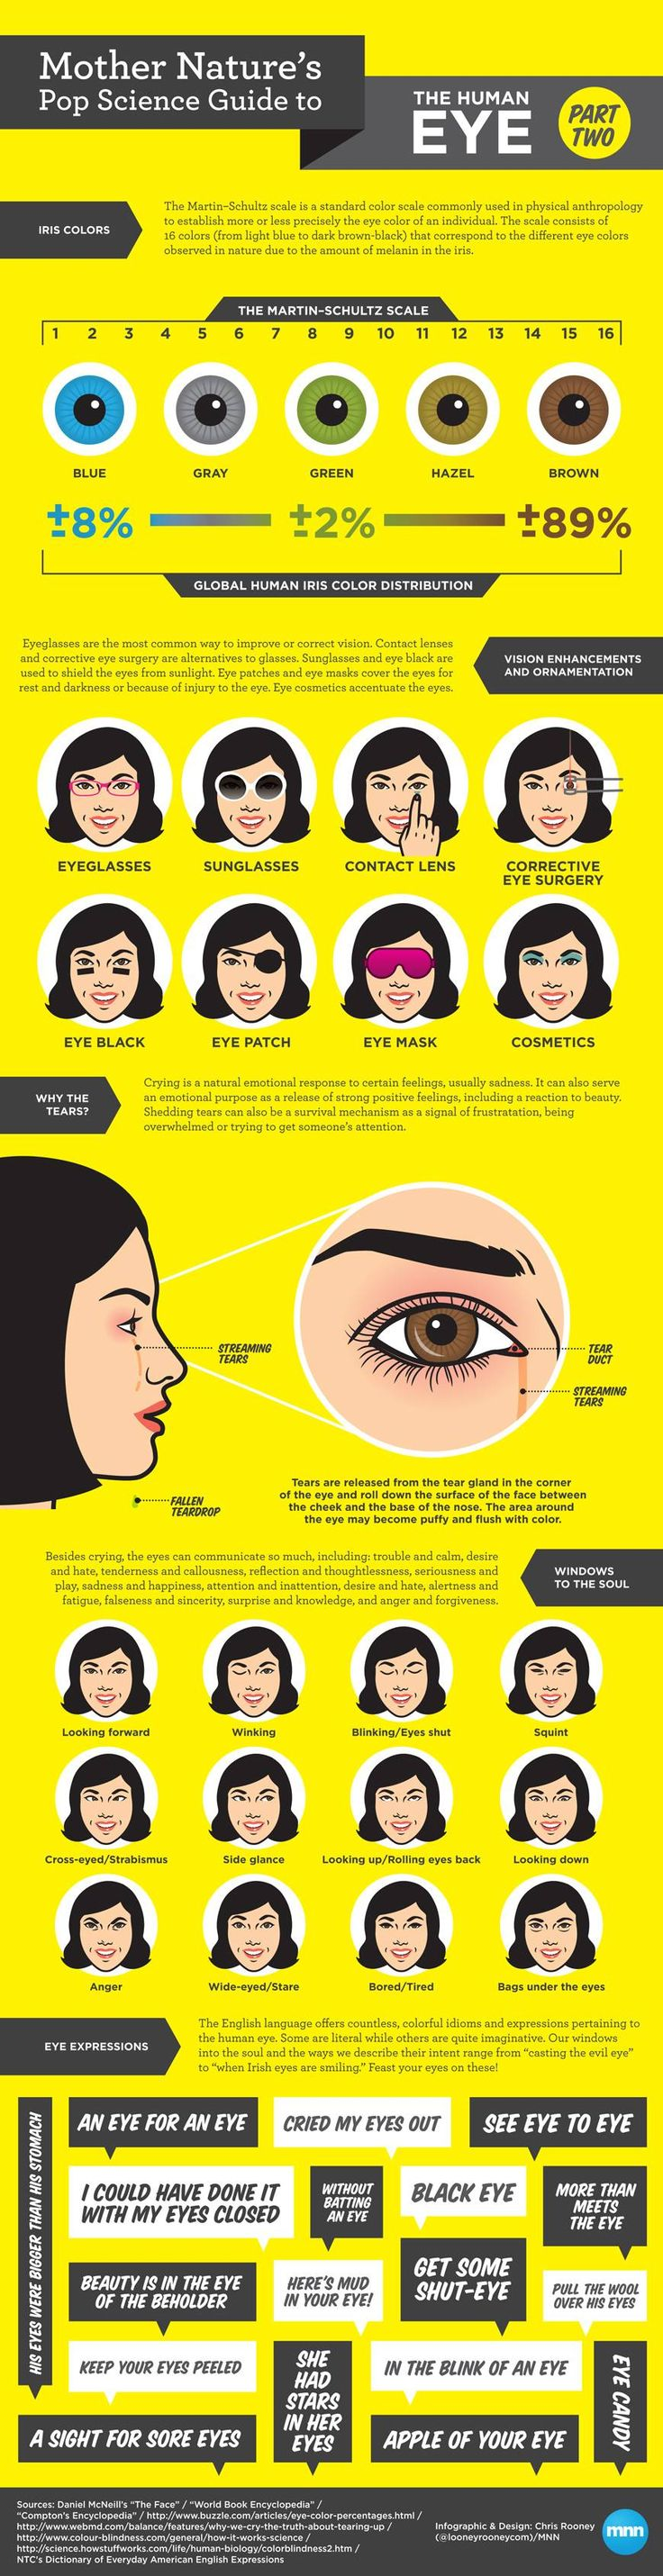 17 best work images on pinterest eye facts eye glasses and mother natures pop science guide to the human eye part 2 infographic nvjuhfo Gallery